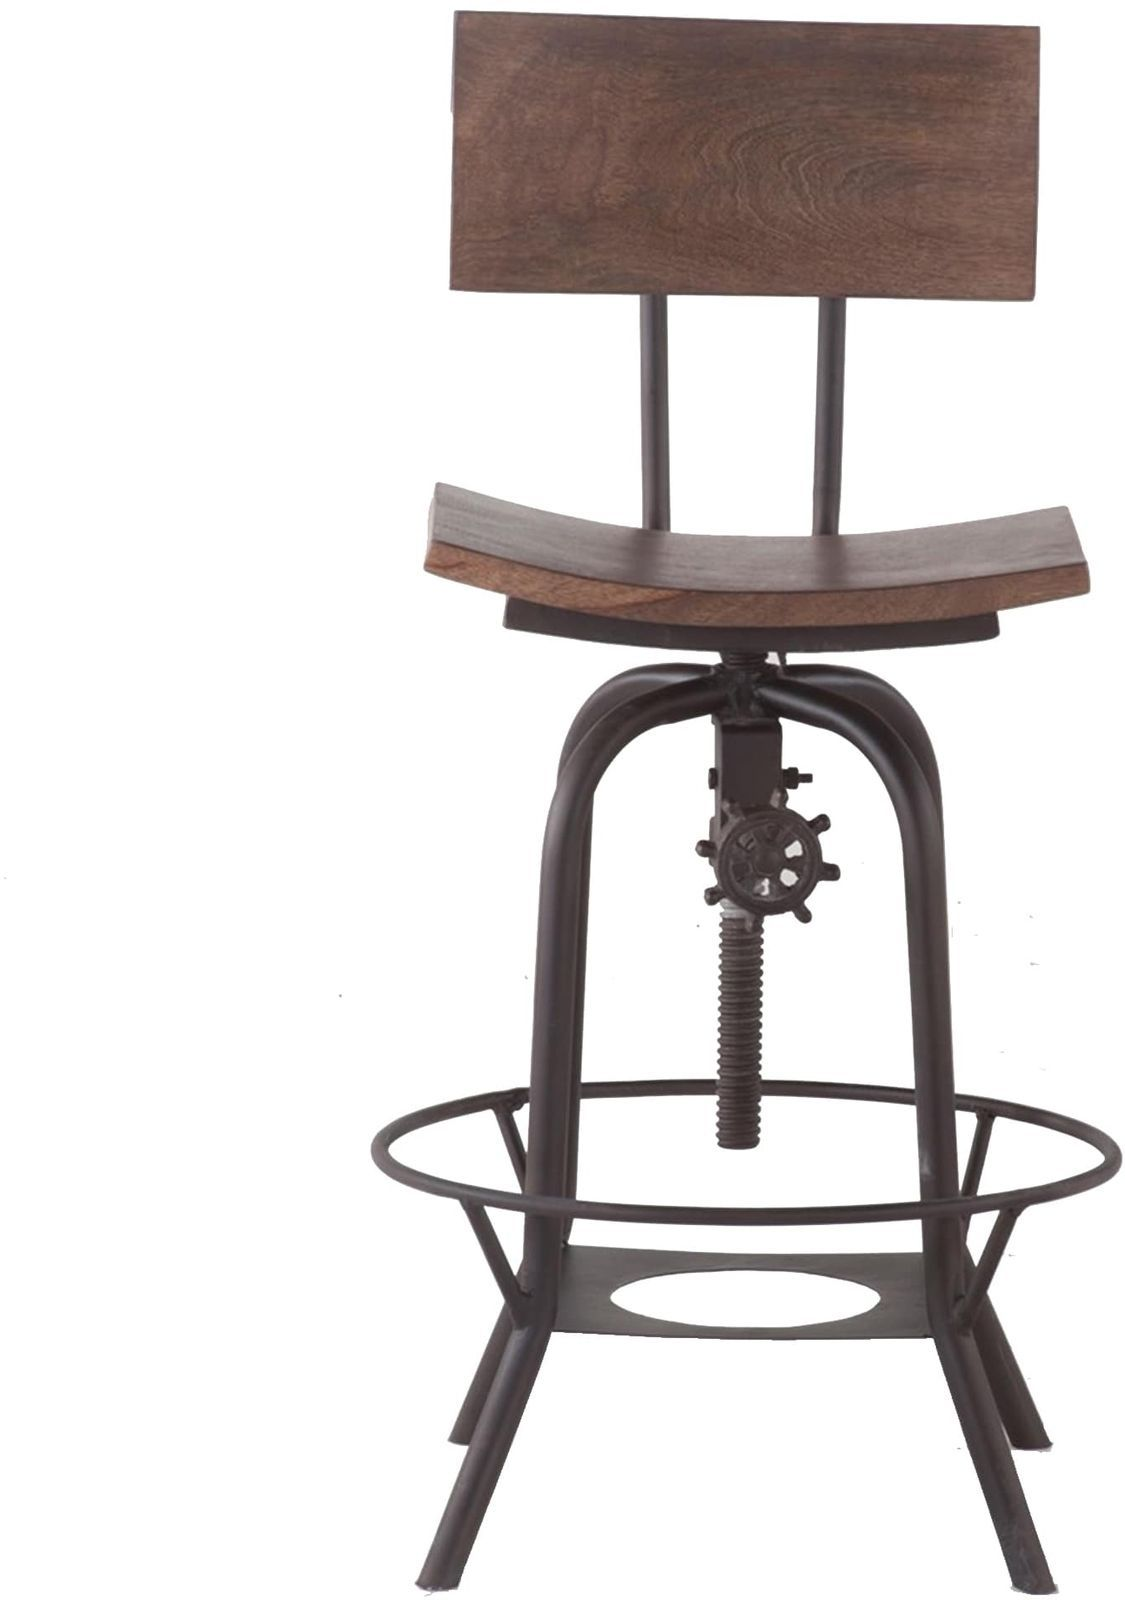 Wood 18 Inch Wide Adjustable Height Bar Stool With Backrest Bar Chair Dining 175 90 Picclick Bar Stools With Backs Bar Stools Stool